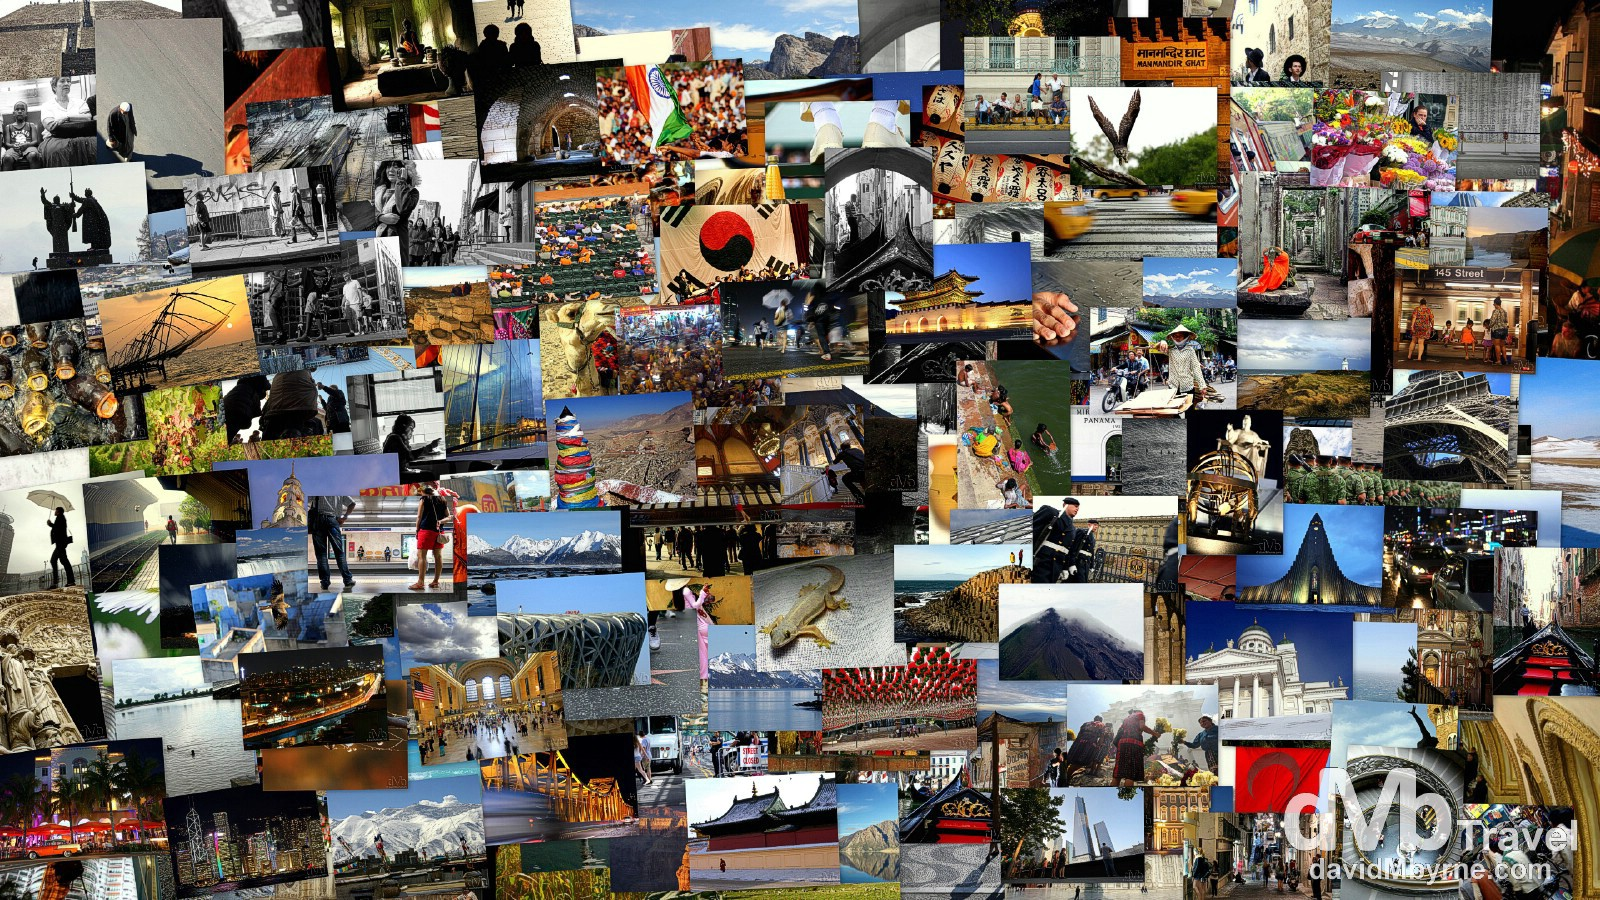 A Decade of Travel Photography - 204 pictures from 41 countries on 5 continents.